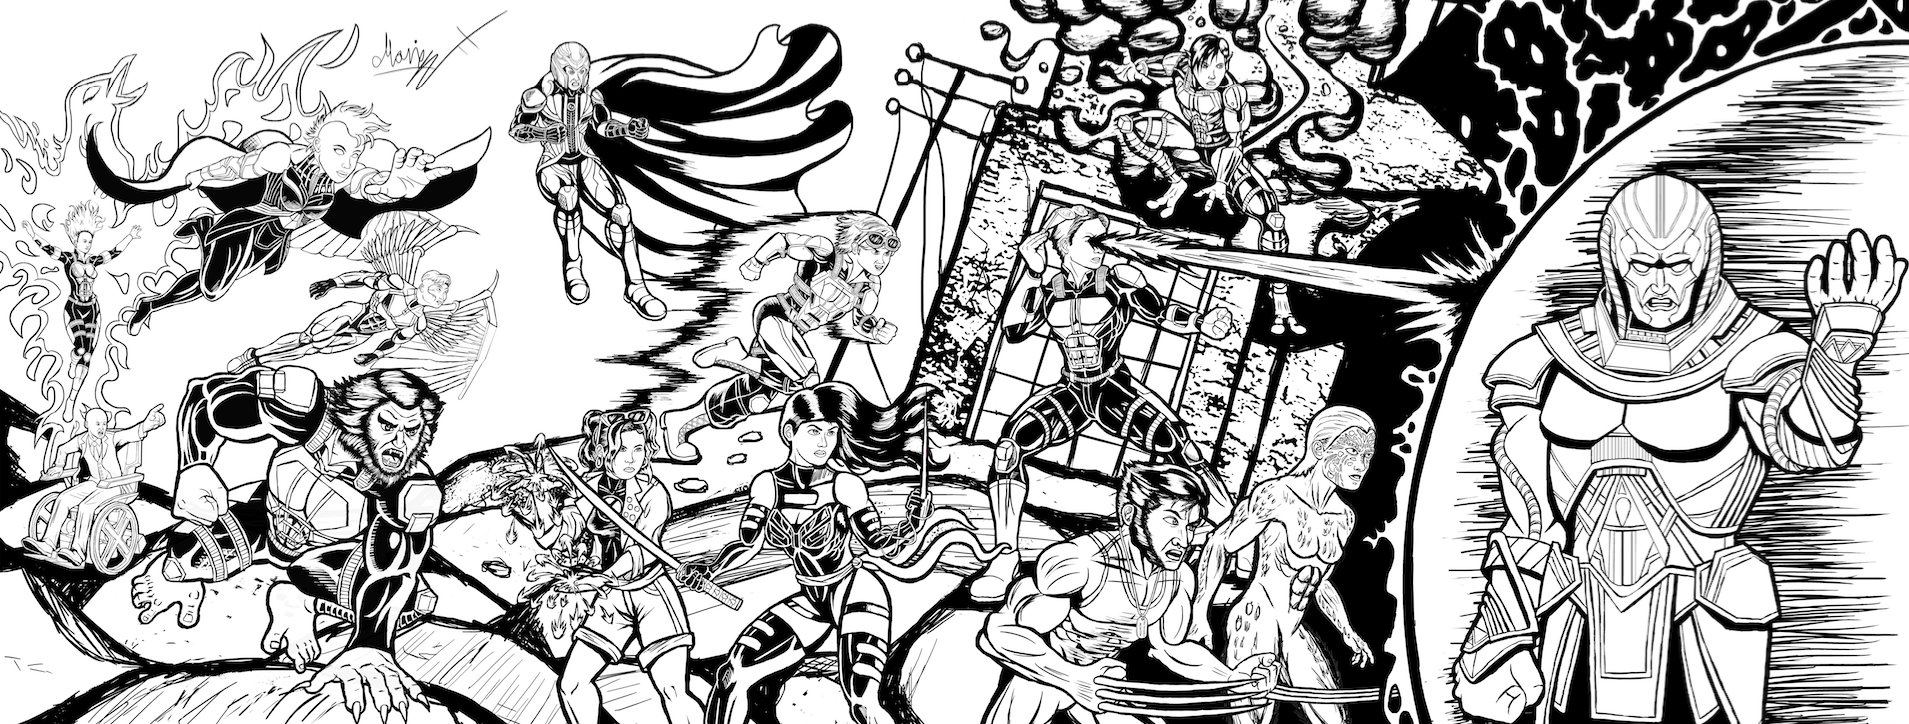 Inked X-Men: Apocalypse Jim lee 90's cover Homage